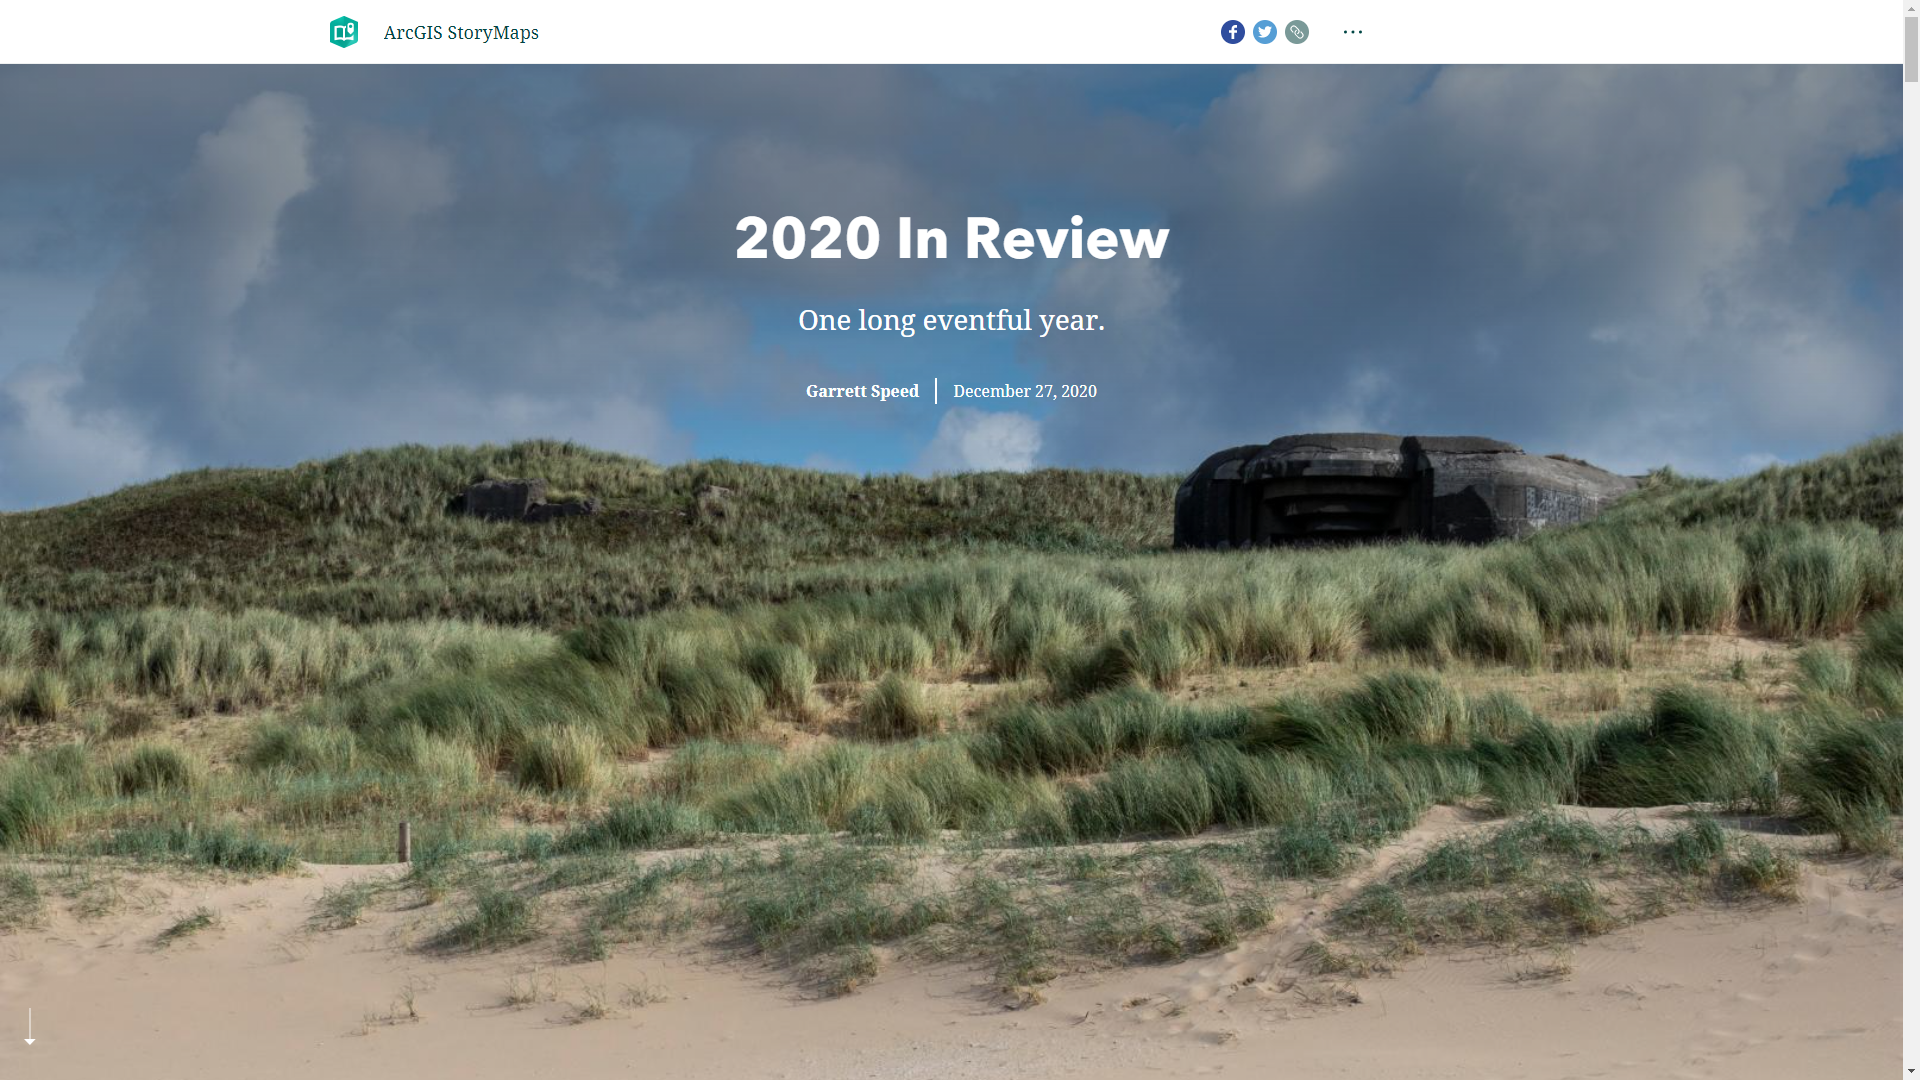 A screenshot of the linked page. In the screenshot is an image of a World War II bunker in Schevingen, Zuid-Holland, the Netherlands, as well as text, the title text saying 2020 In Review, and a subtitle of One long eventful year.